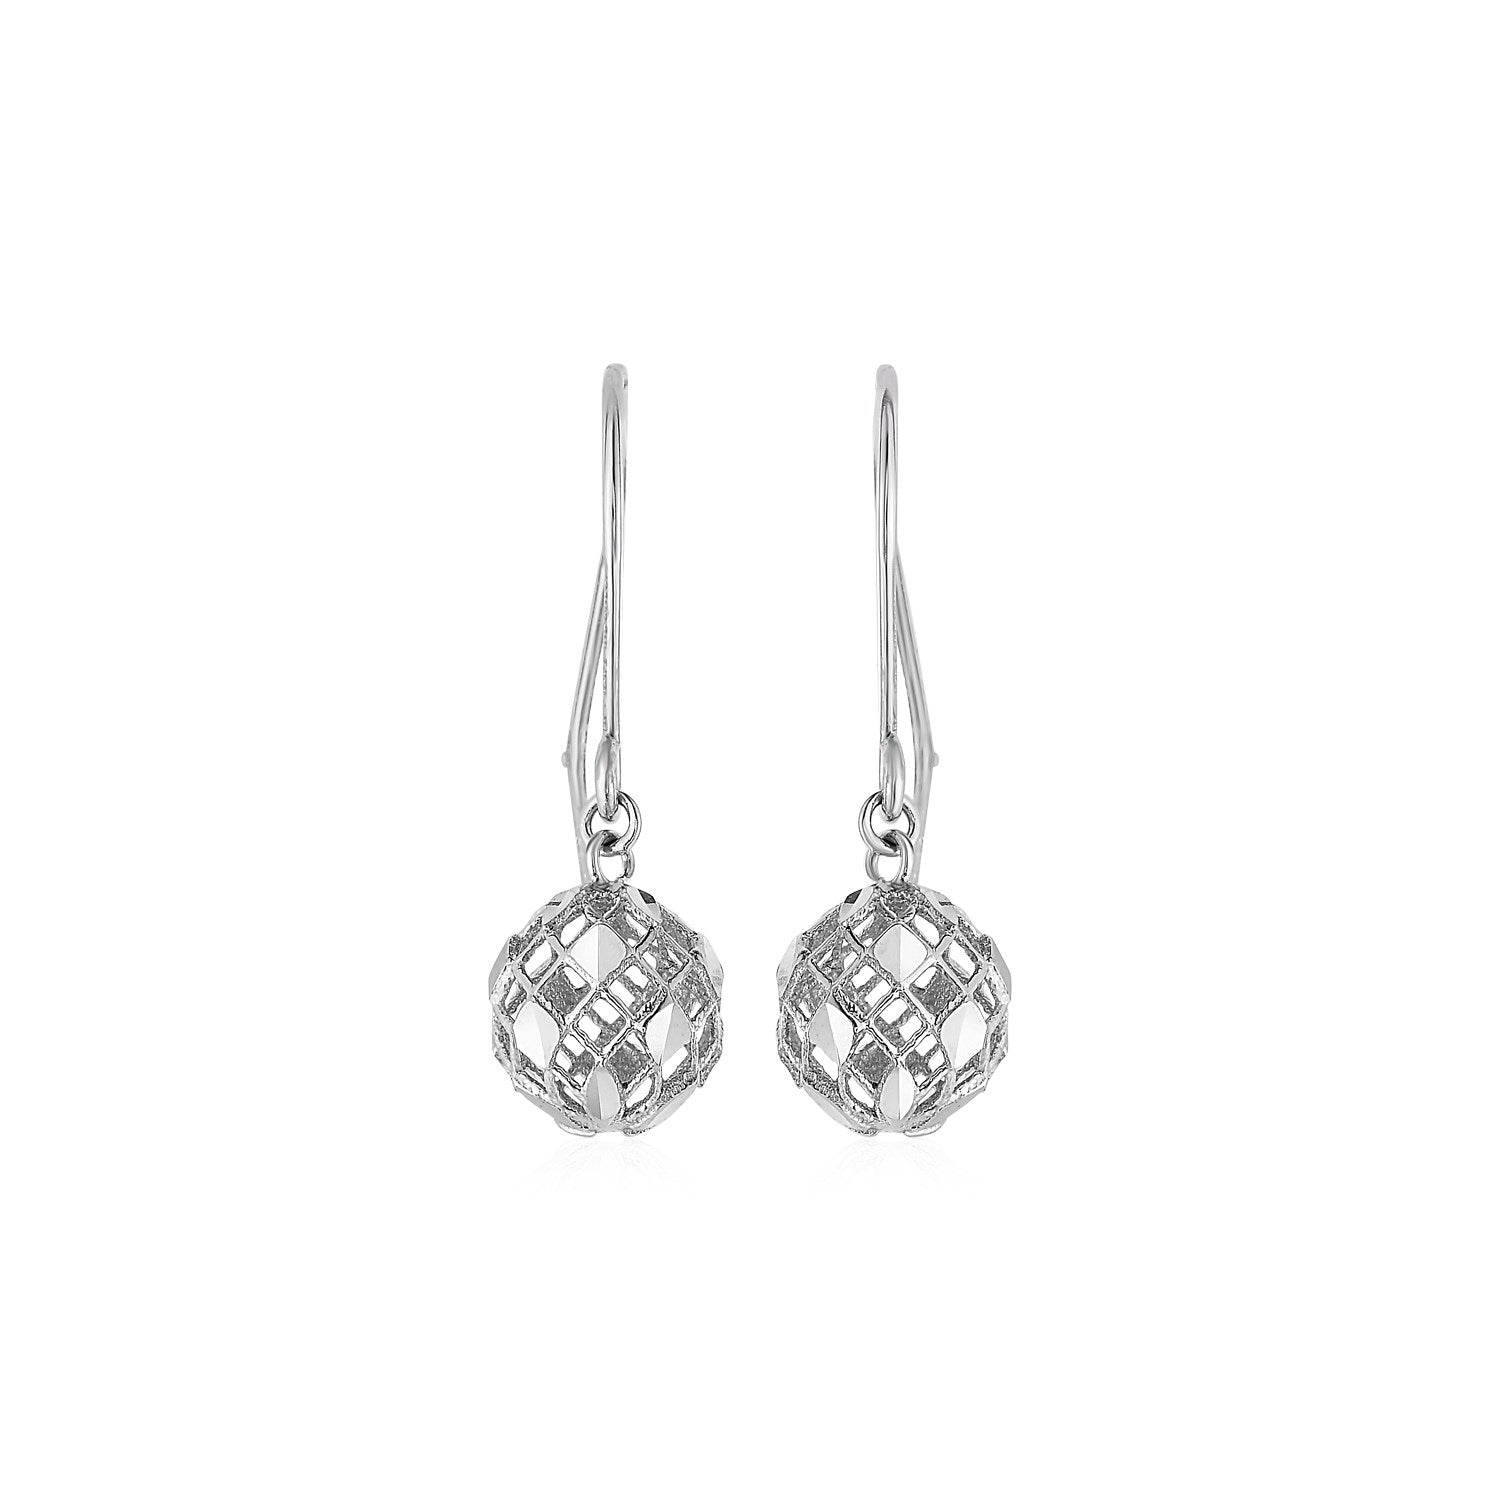 Earrings with Geometric Pierced Drops in 10K White Gold